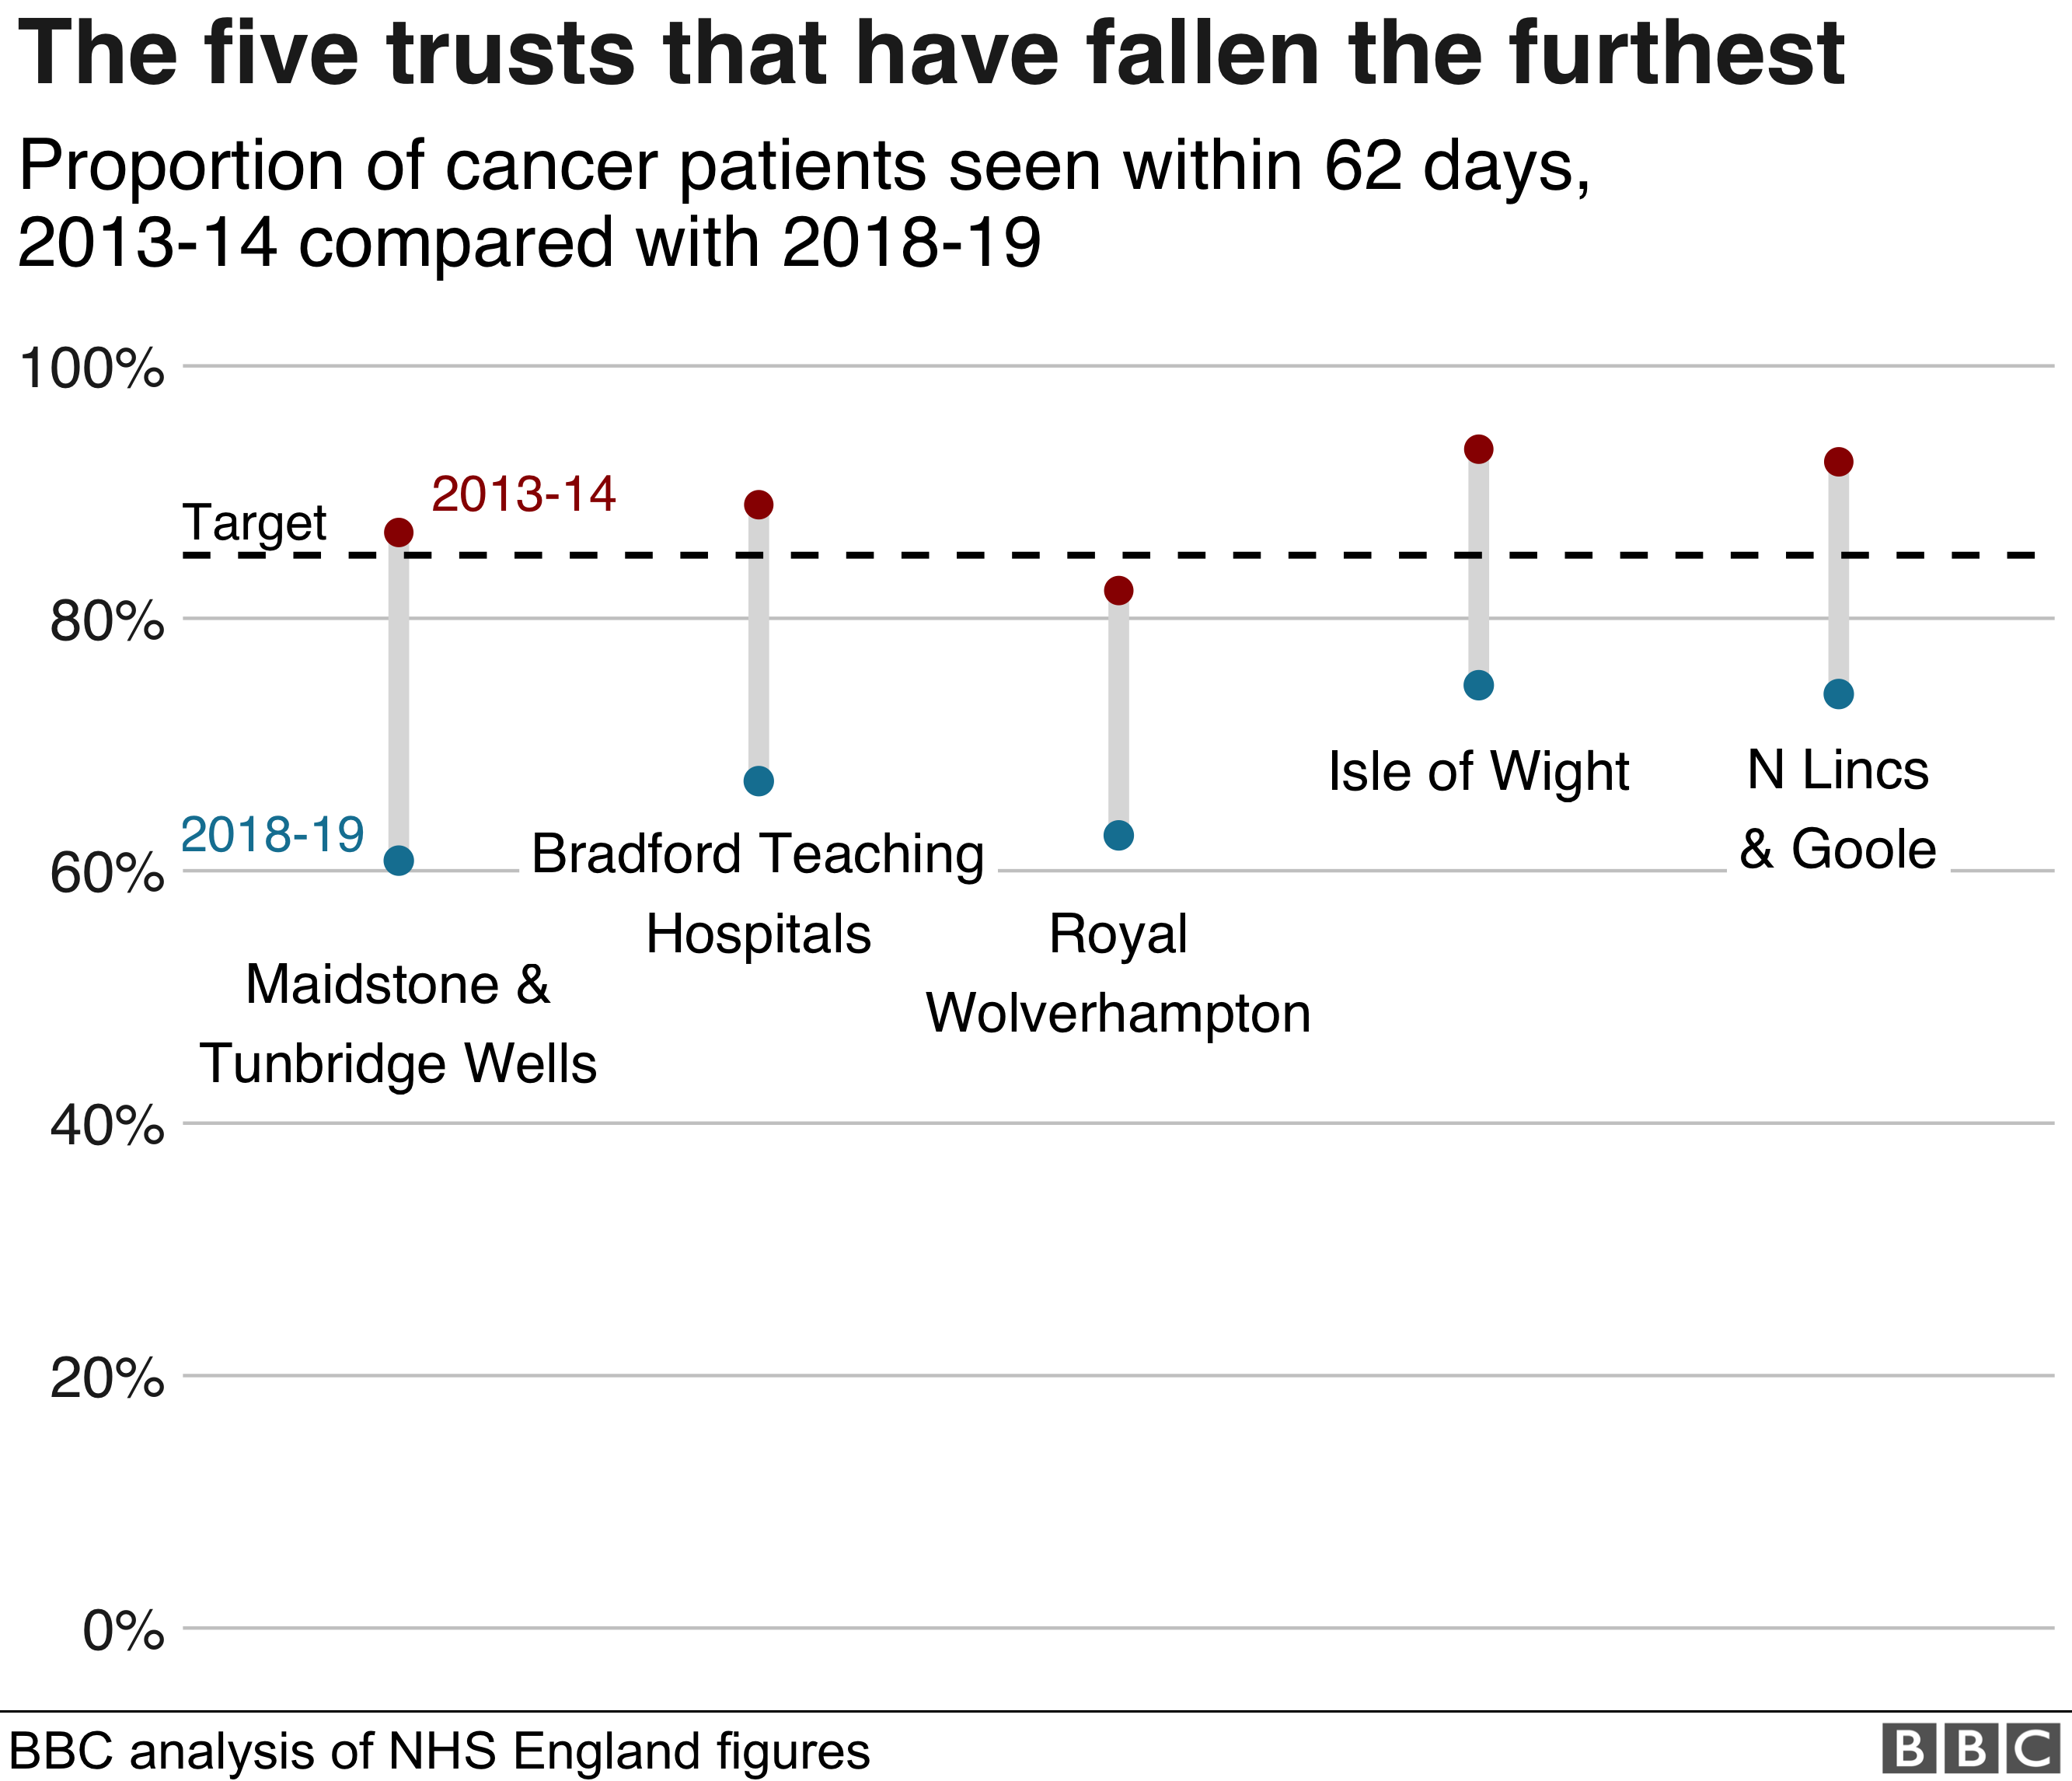 The five trusts that have fallen the furthest